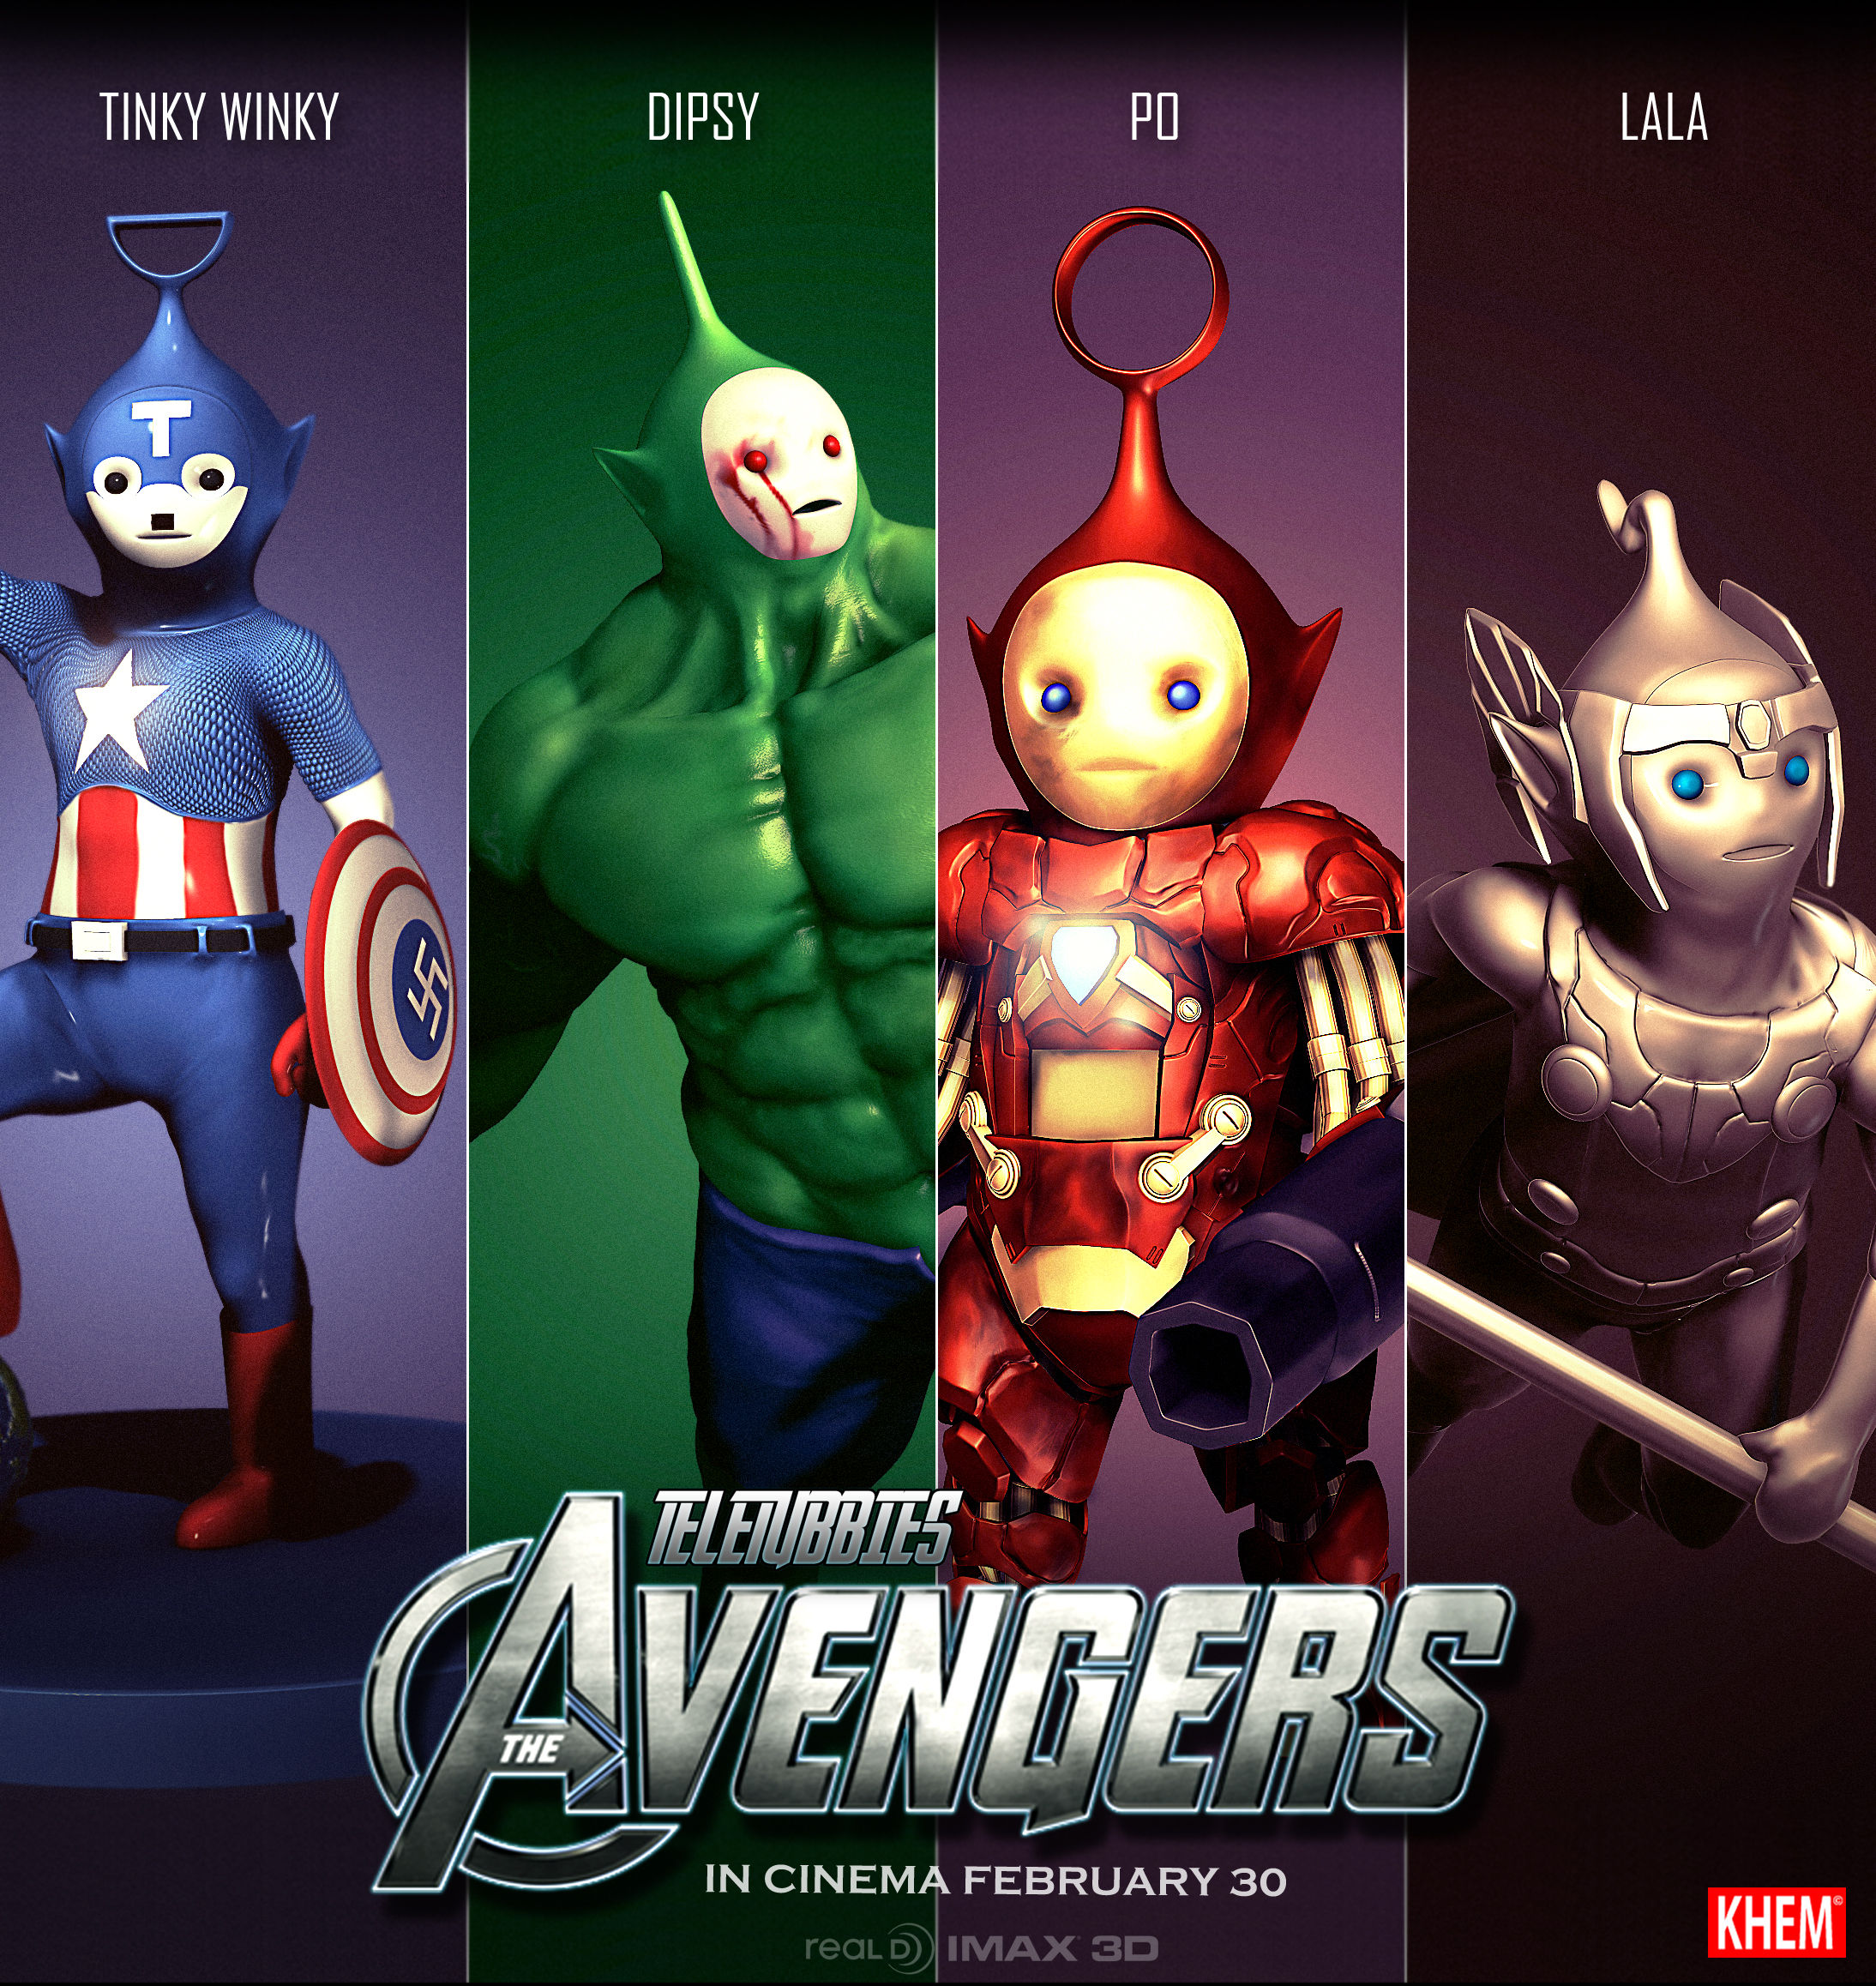 Teletubbies Avengers Teletubbies Avengers